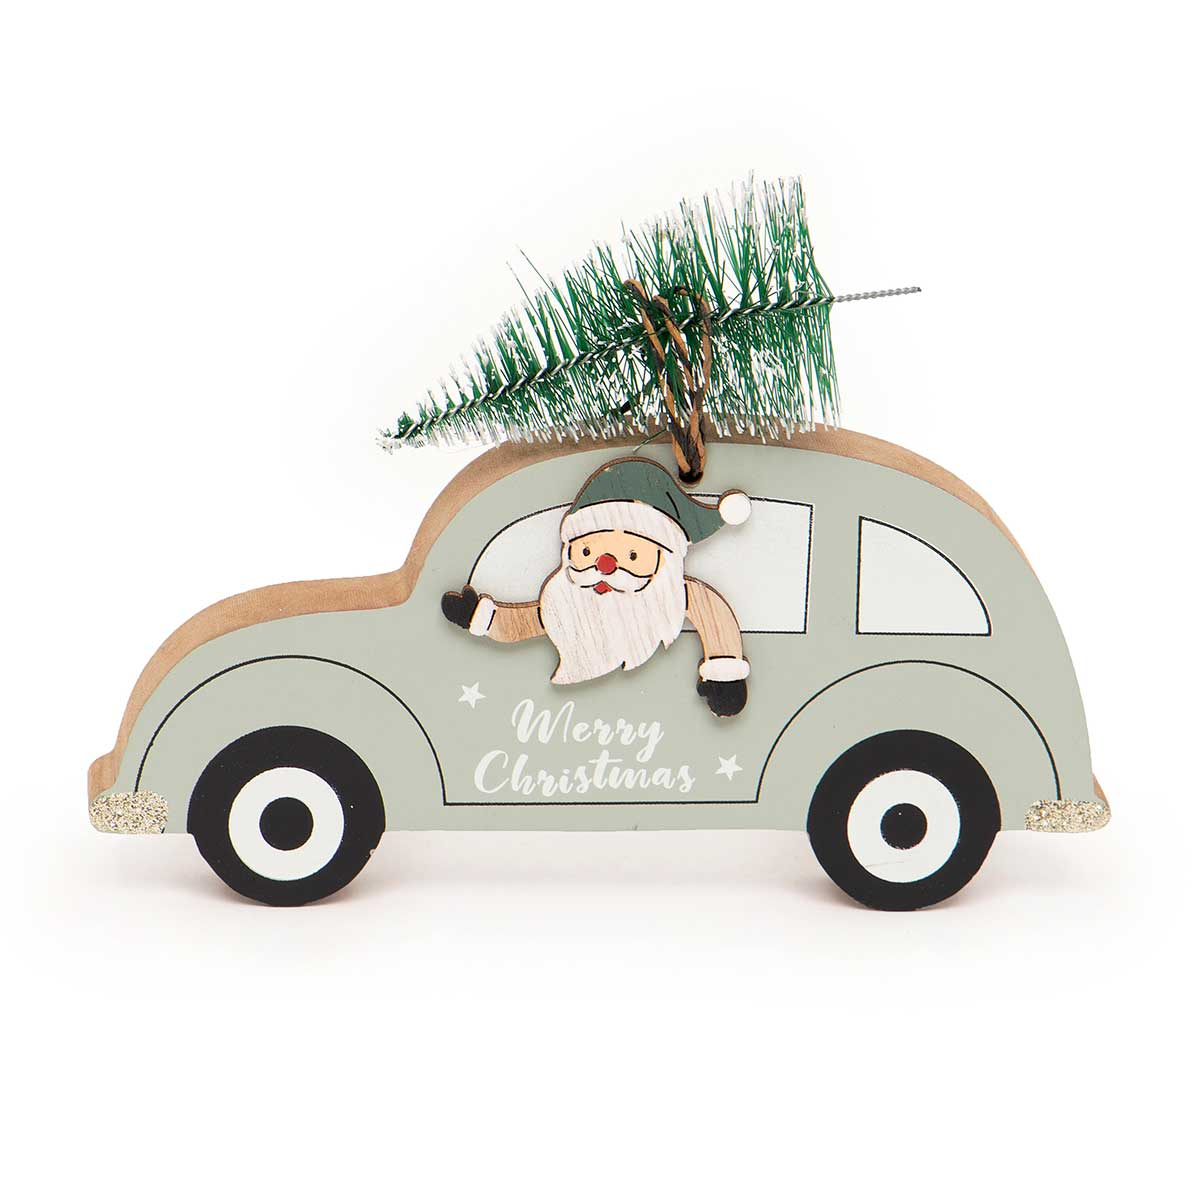 WOOD SANTA IN CAR WITH TREE